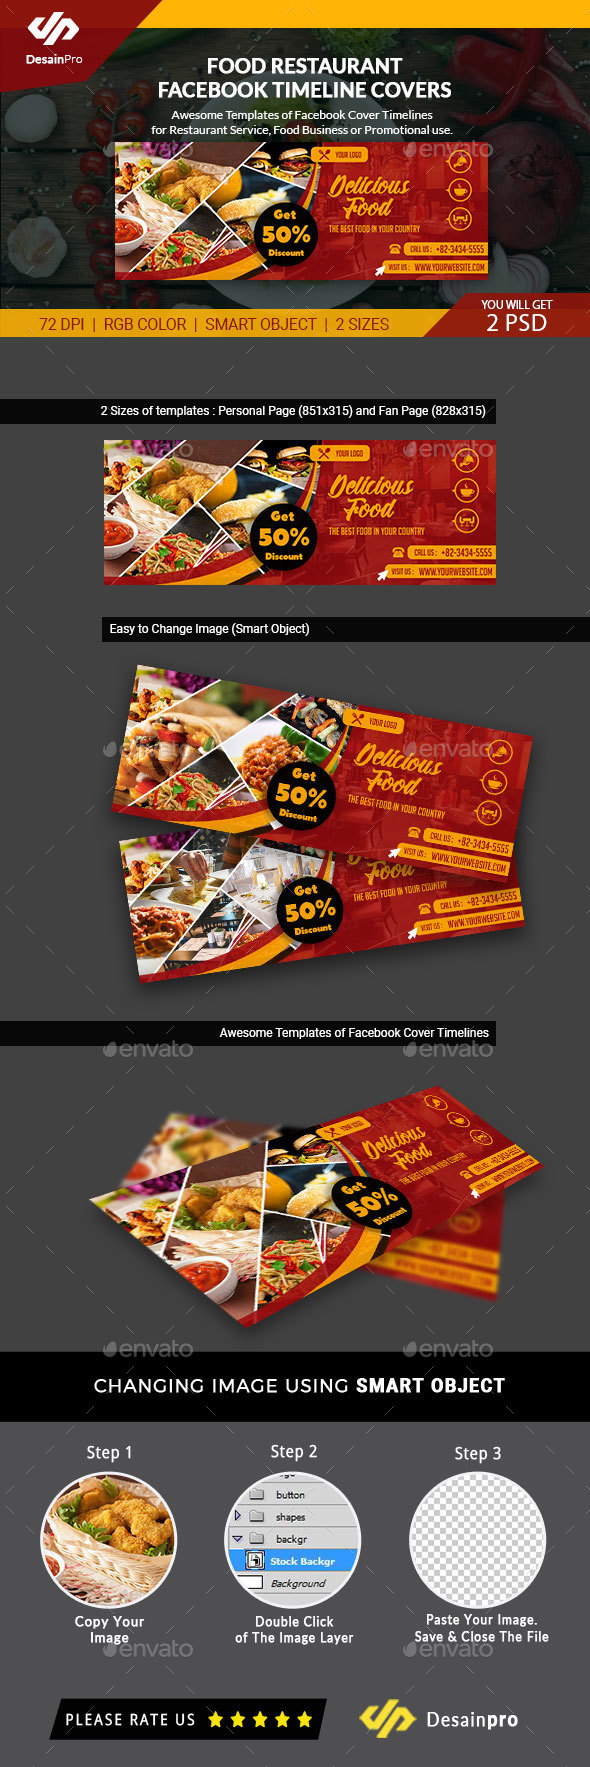 Food & Restaurant Business Services Facebook Timeline Covers - AR - Facebook Timeline Covers Social Media